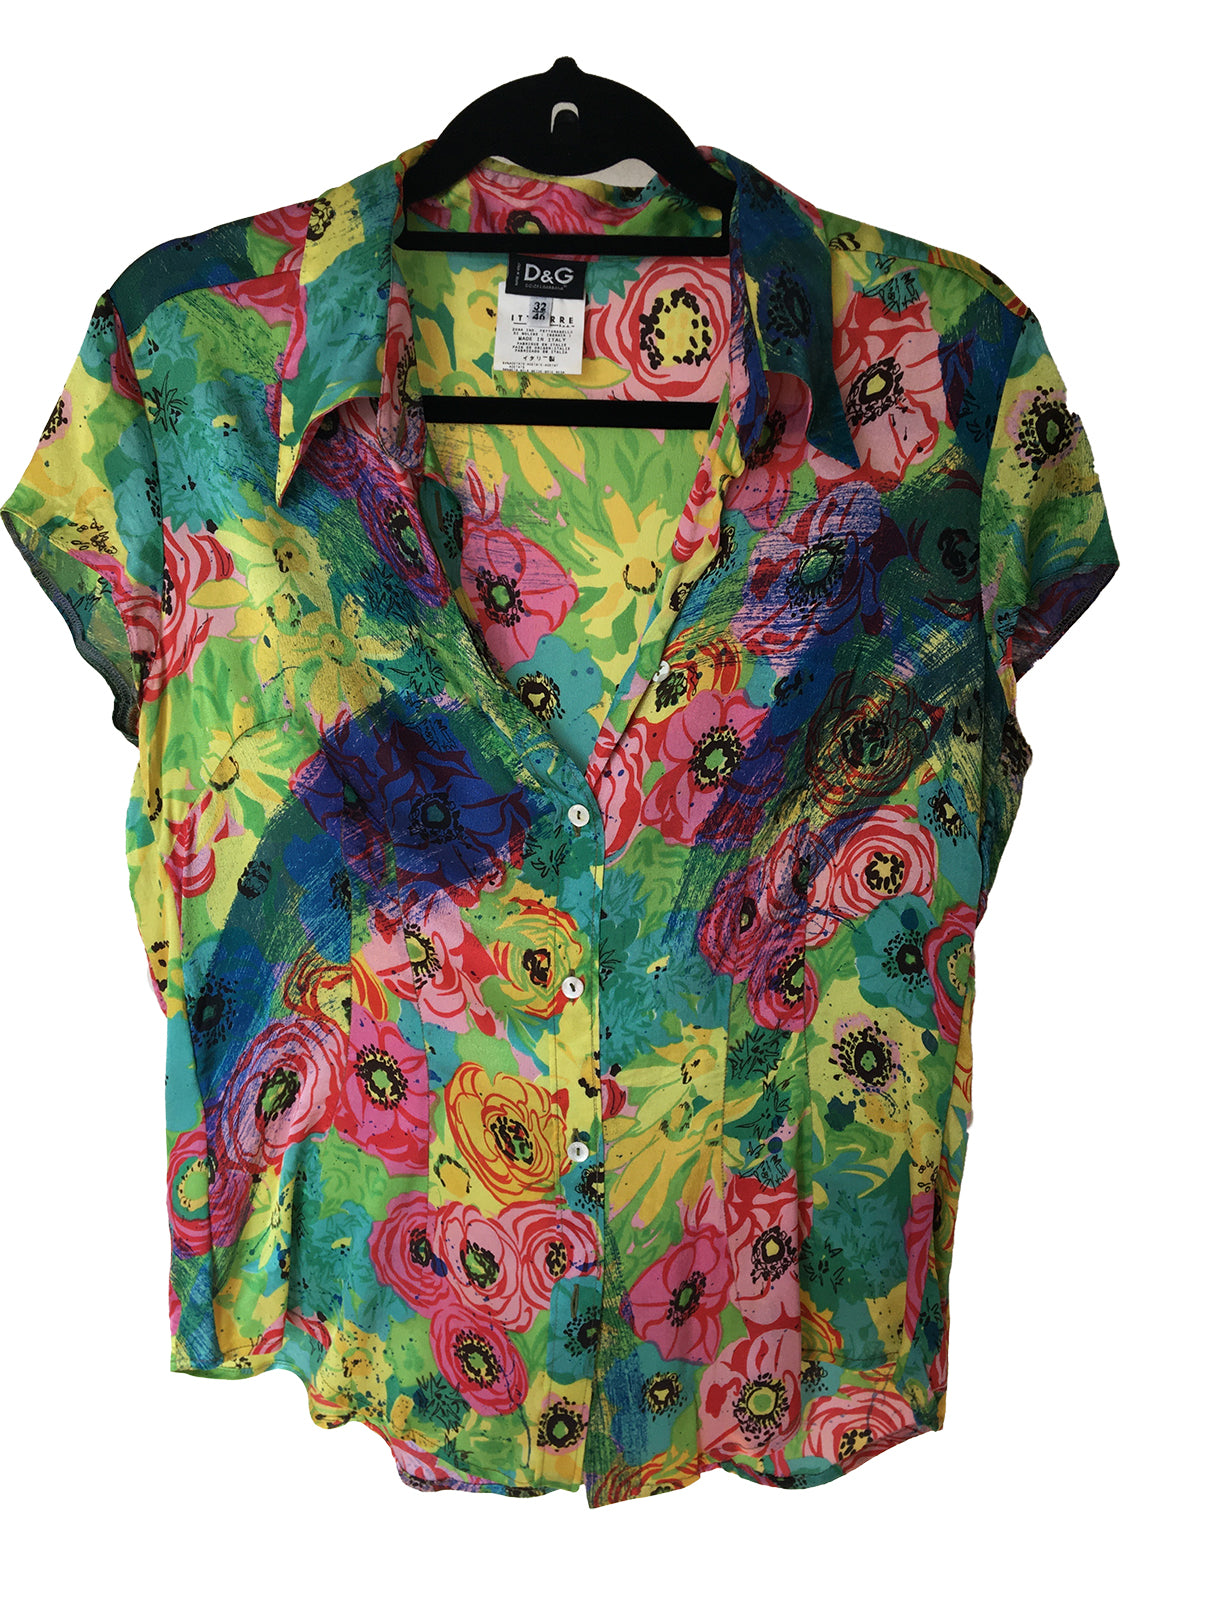 Dolce & Gabbana Multi Colored Short Sleeve Blouse Size 42 (EU) 46 (IT)